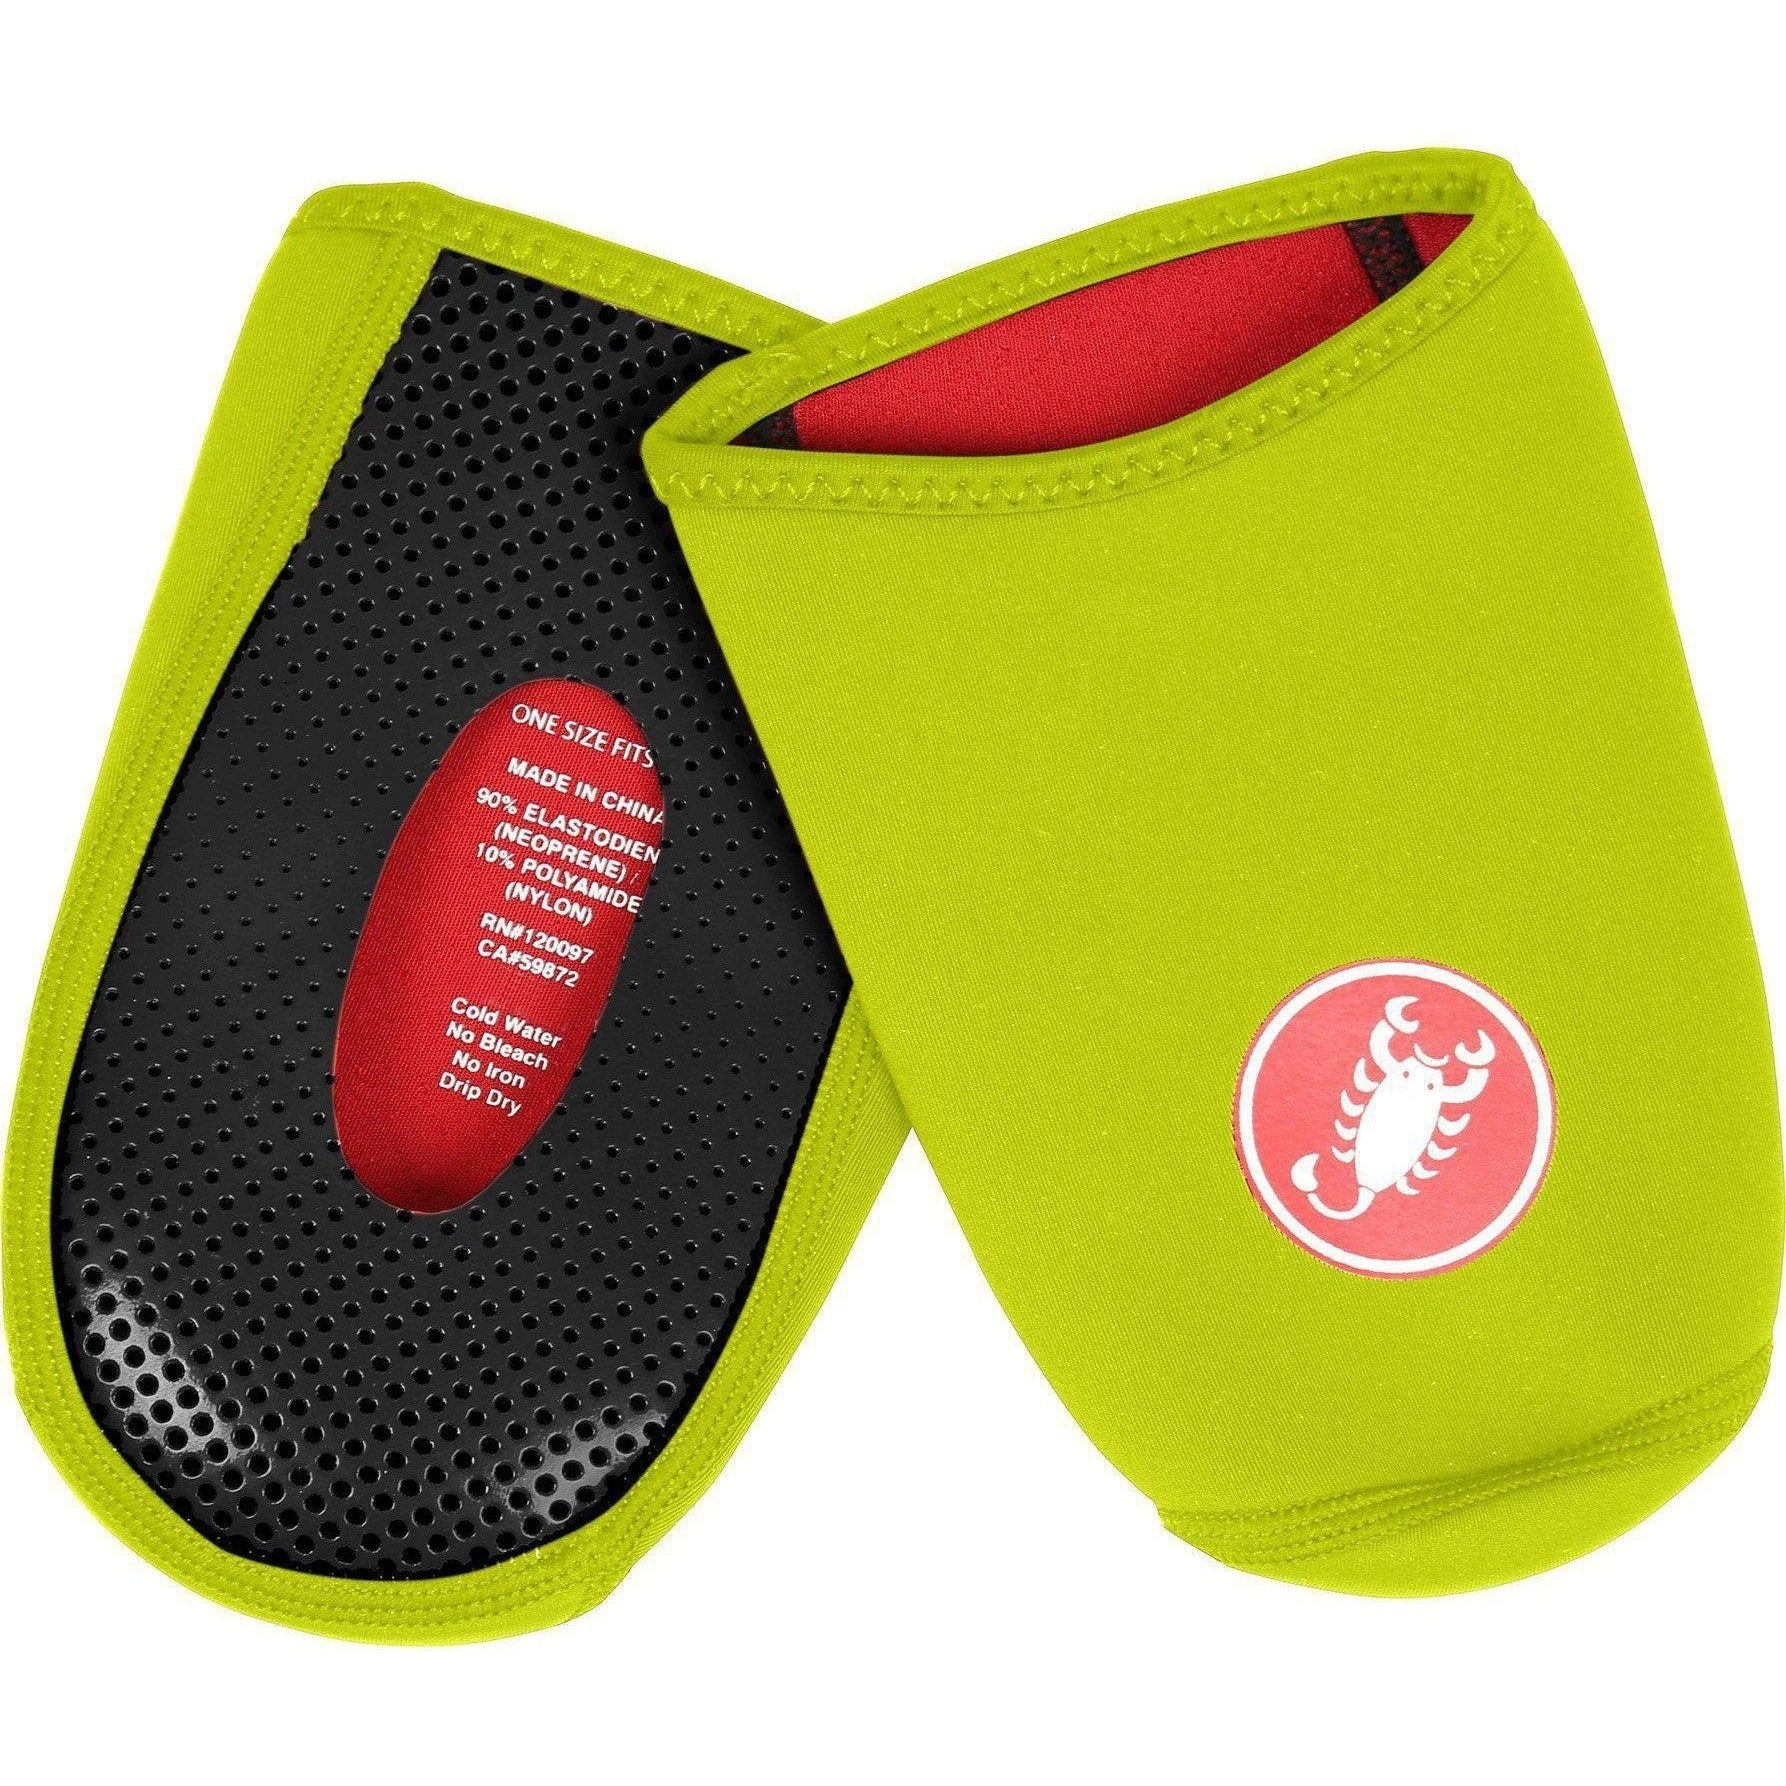 Castelli-Castelli Toe Thingy 2 Toe Covers-Yellow Fluo-Uni-CS180930328-saddleback-elite-performance-cycling